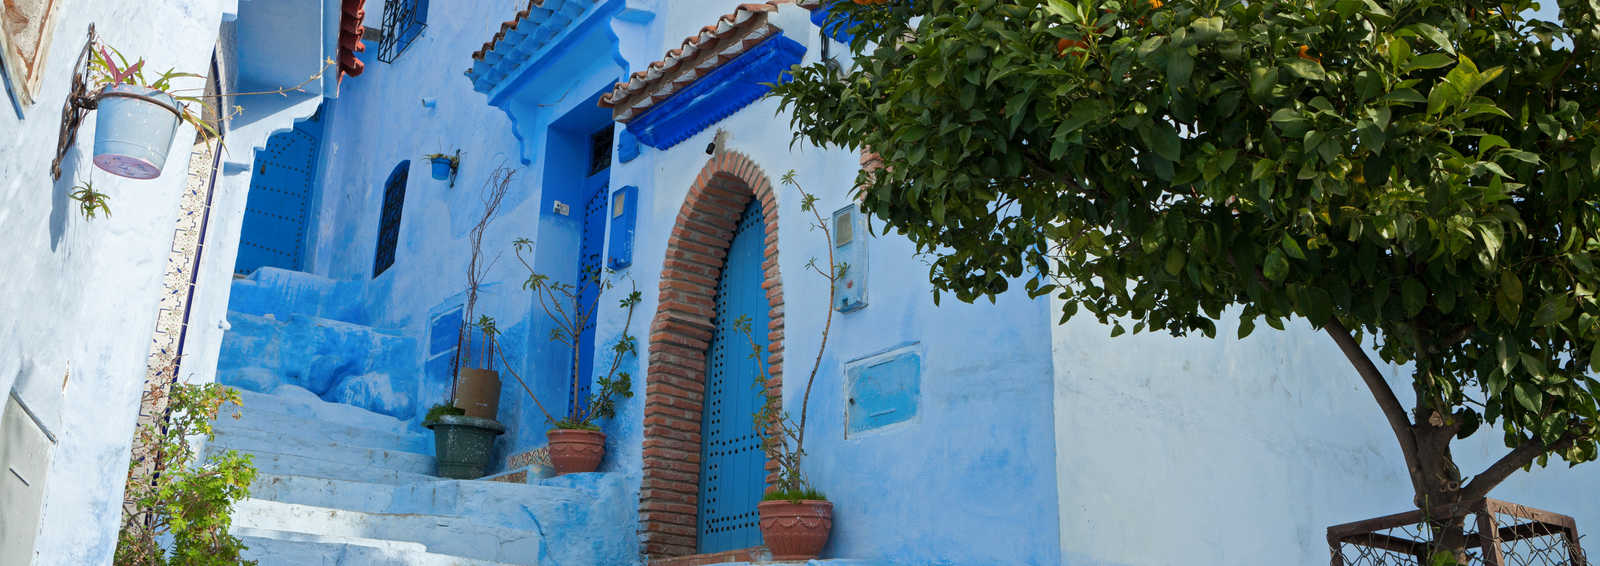 Narrow alleyway in the medina, Chefchaouen